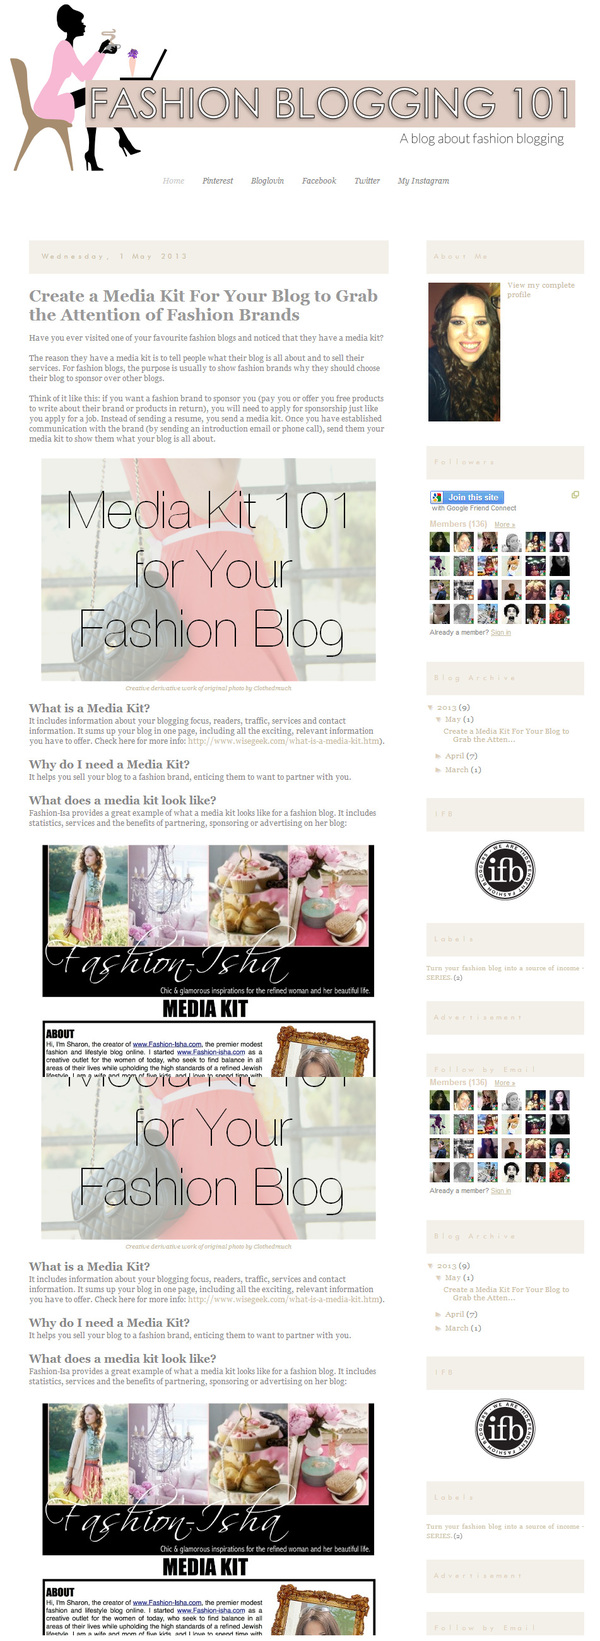 fashion blogging 101: how to make profit from your passion for fashion